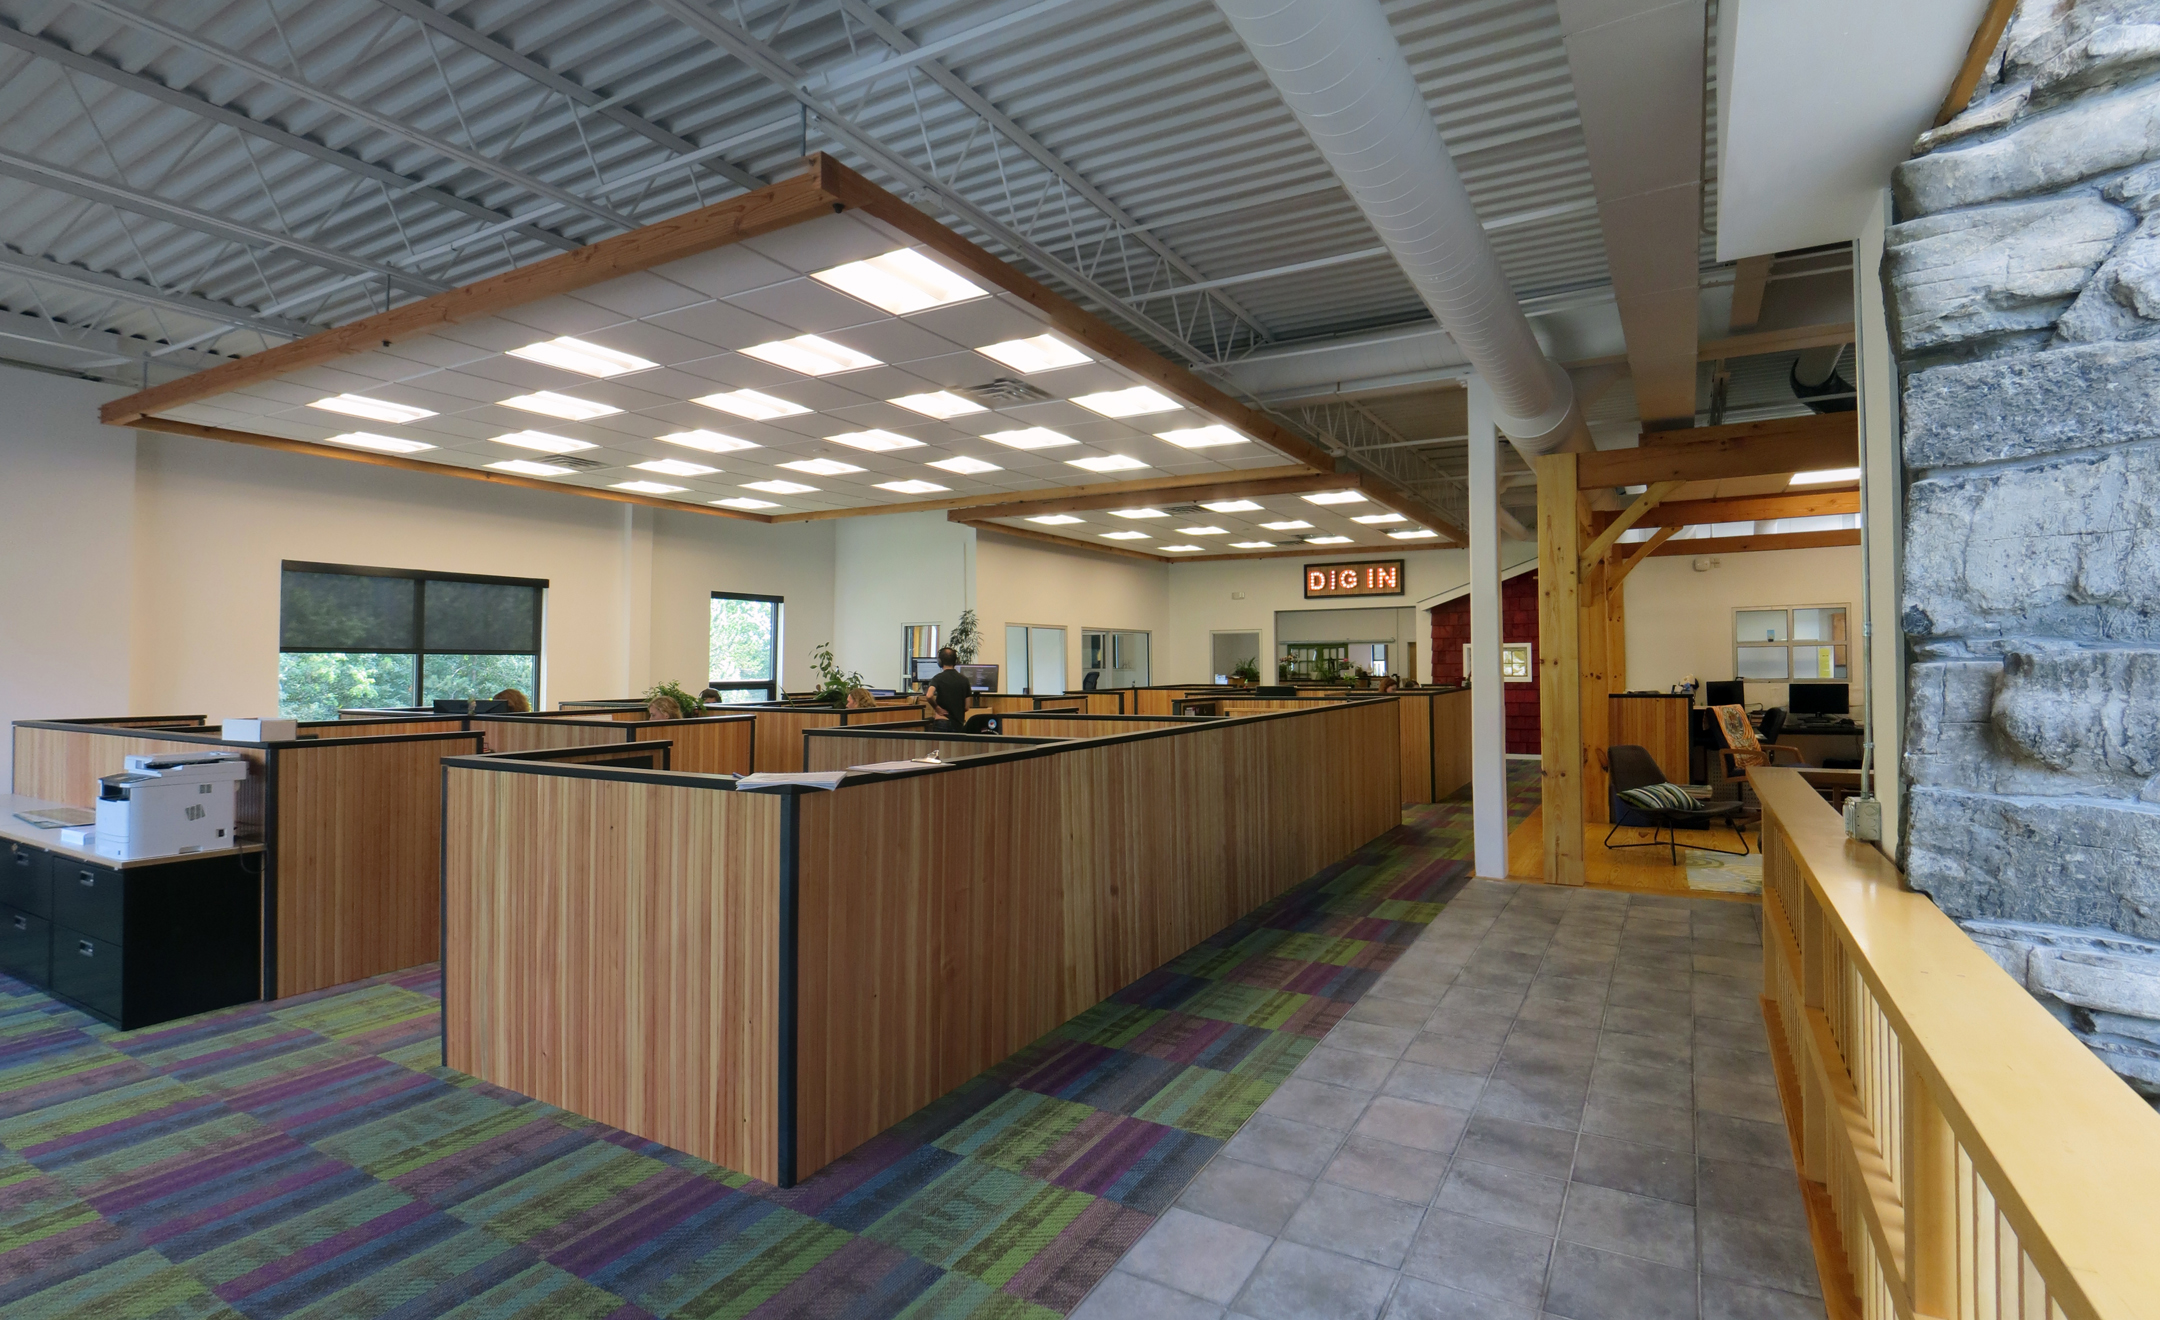 Low_Entry to open work area pano.jpg